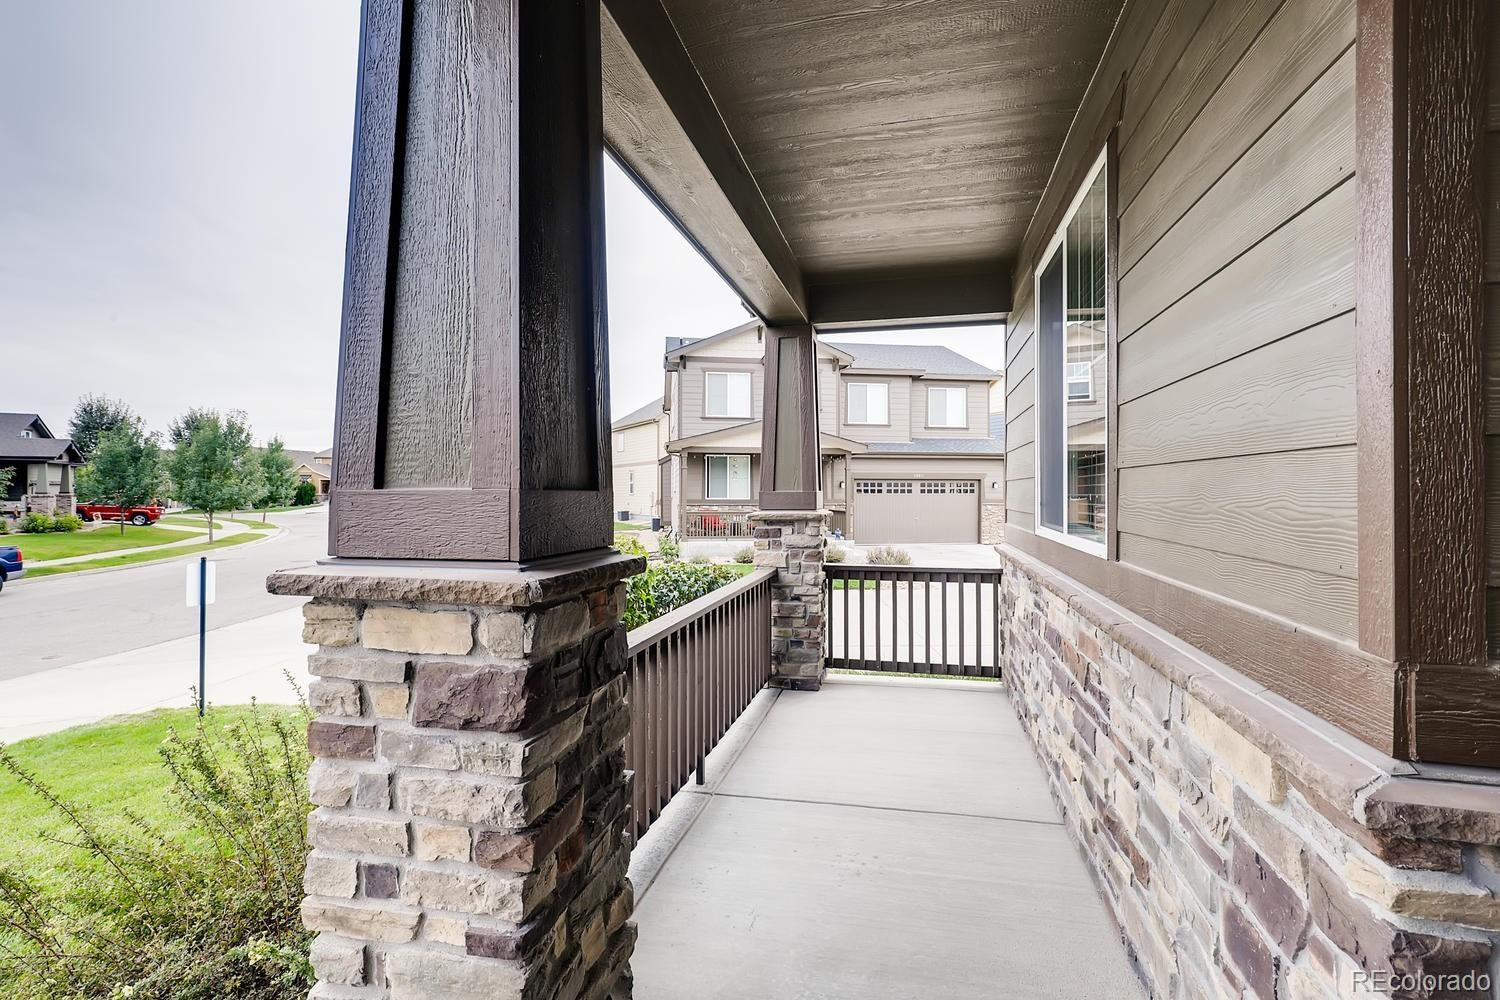 MLS# 8893940 - 2 - 1373 Armstrong Drive, Longmont, CO 80504